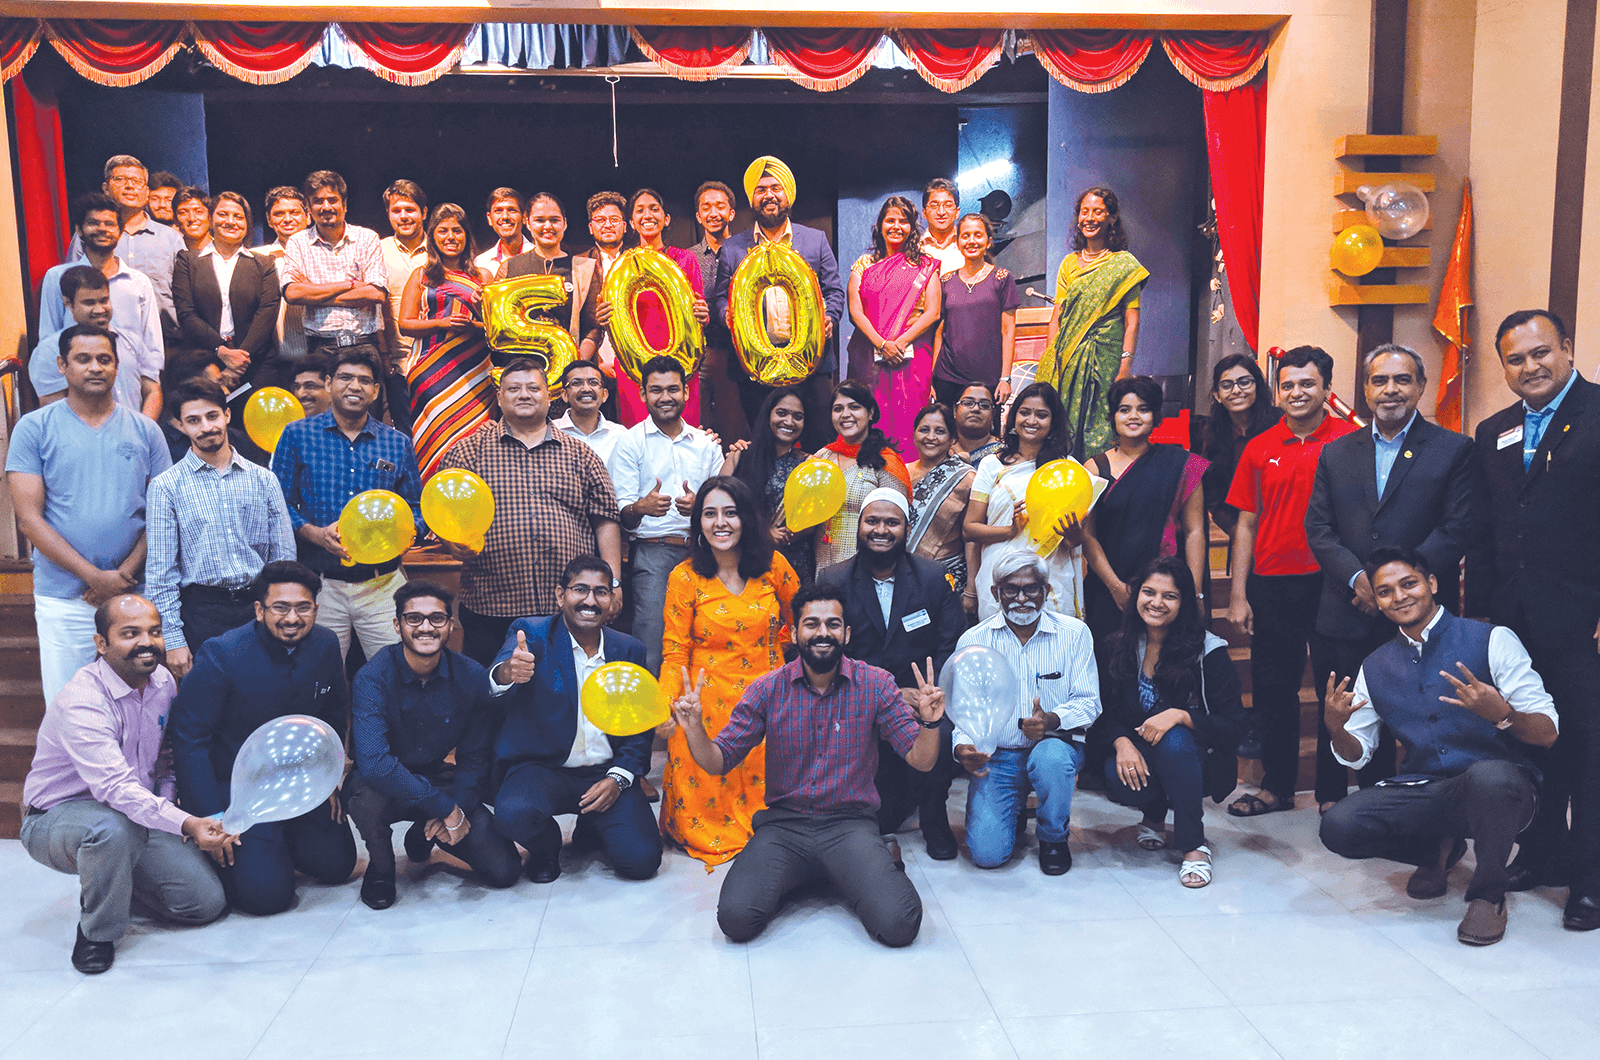 Group of Toastmasters members pose in Pune, India